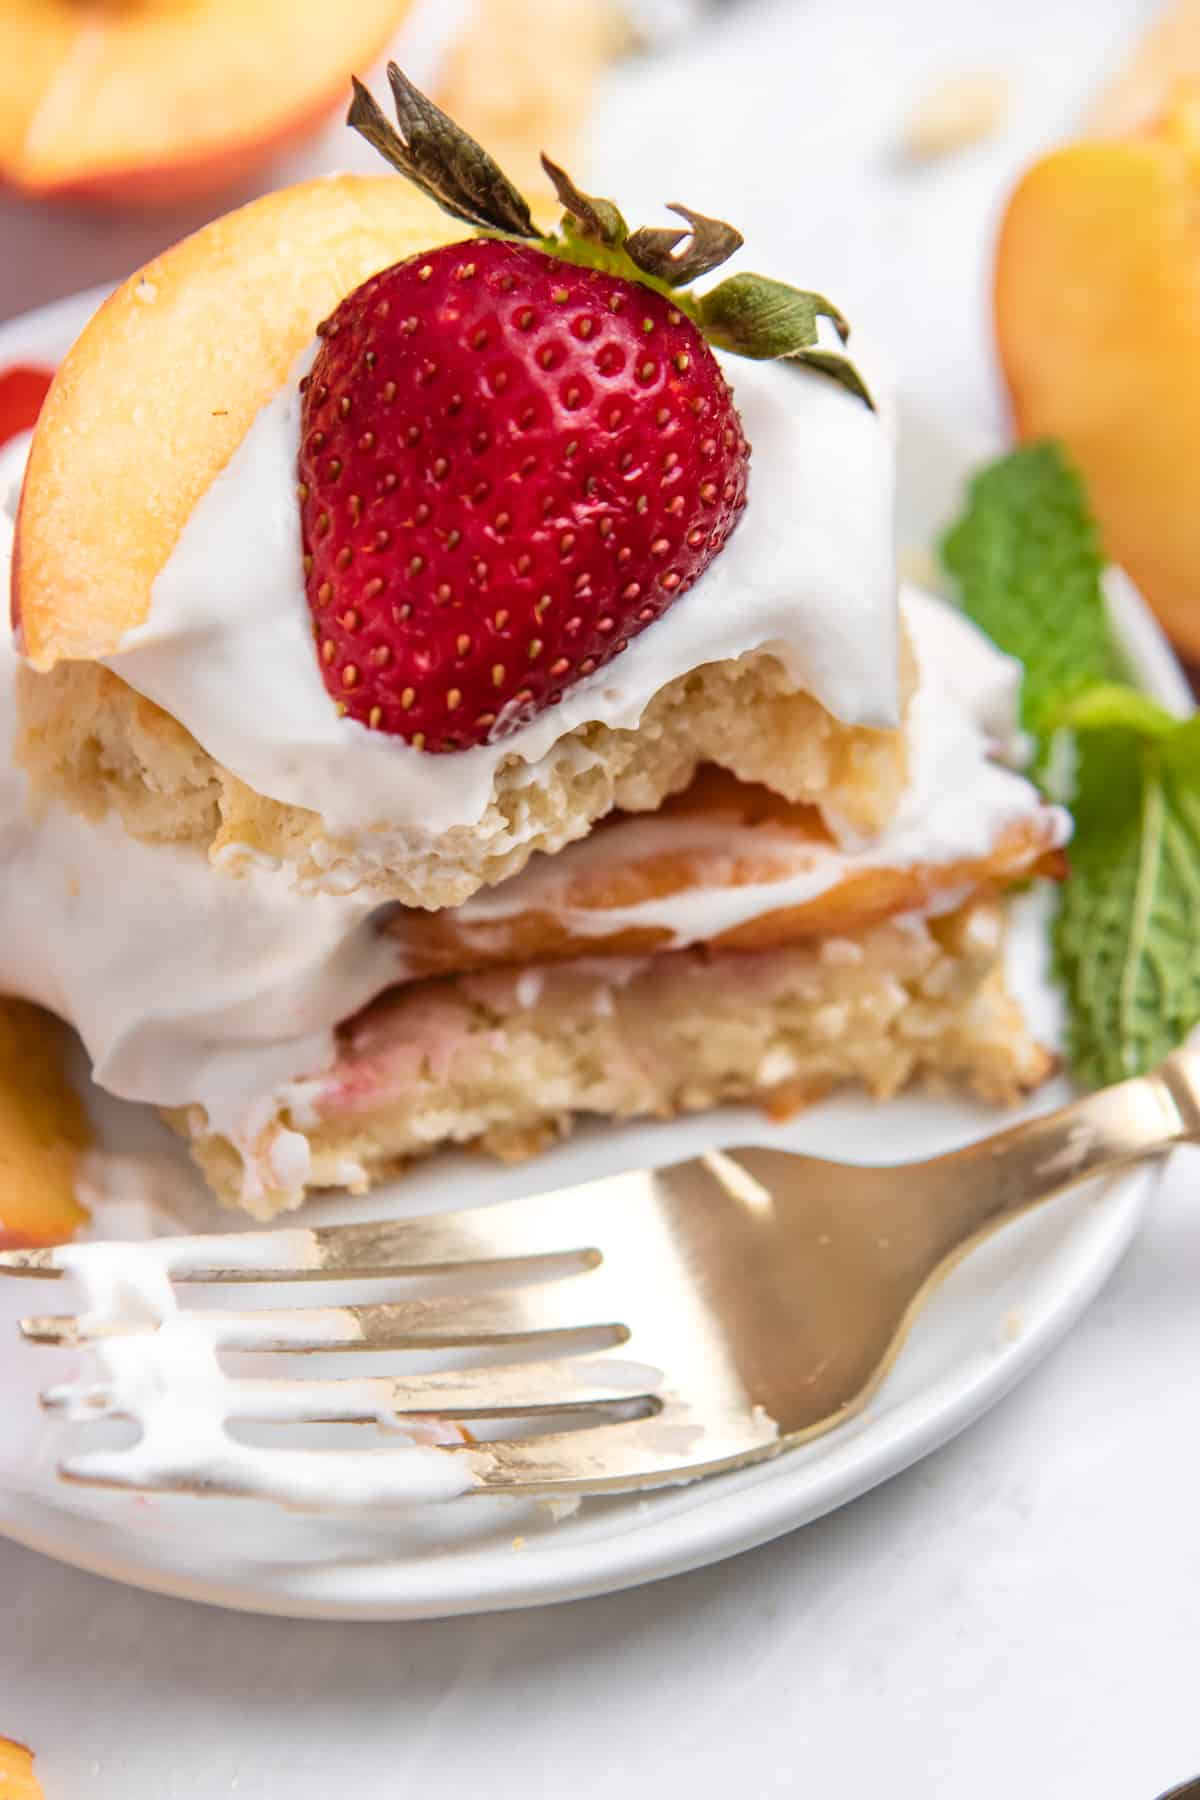 Fork on plate with slice cut out of strawberry peach shortcake.